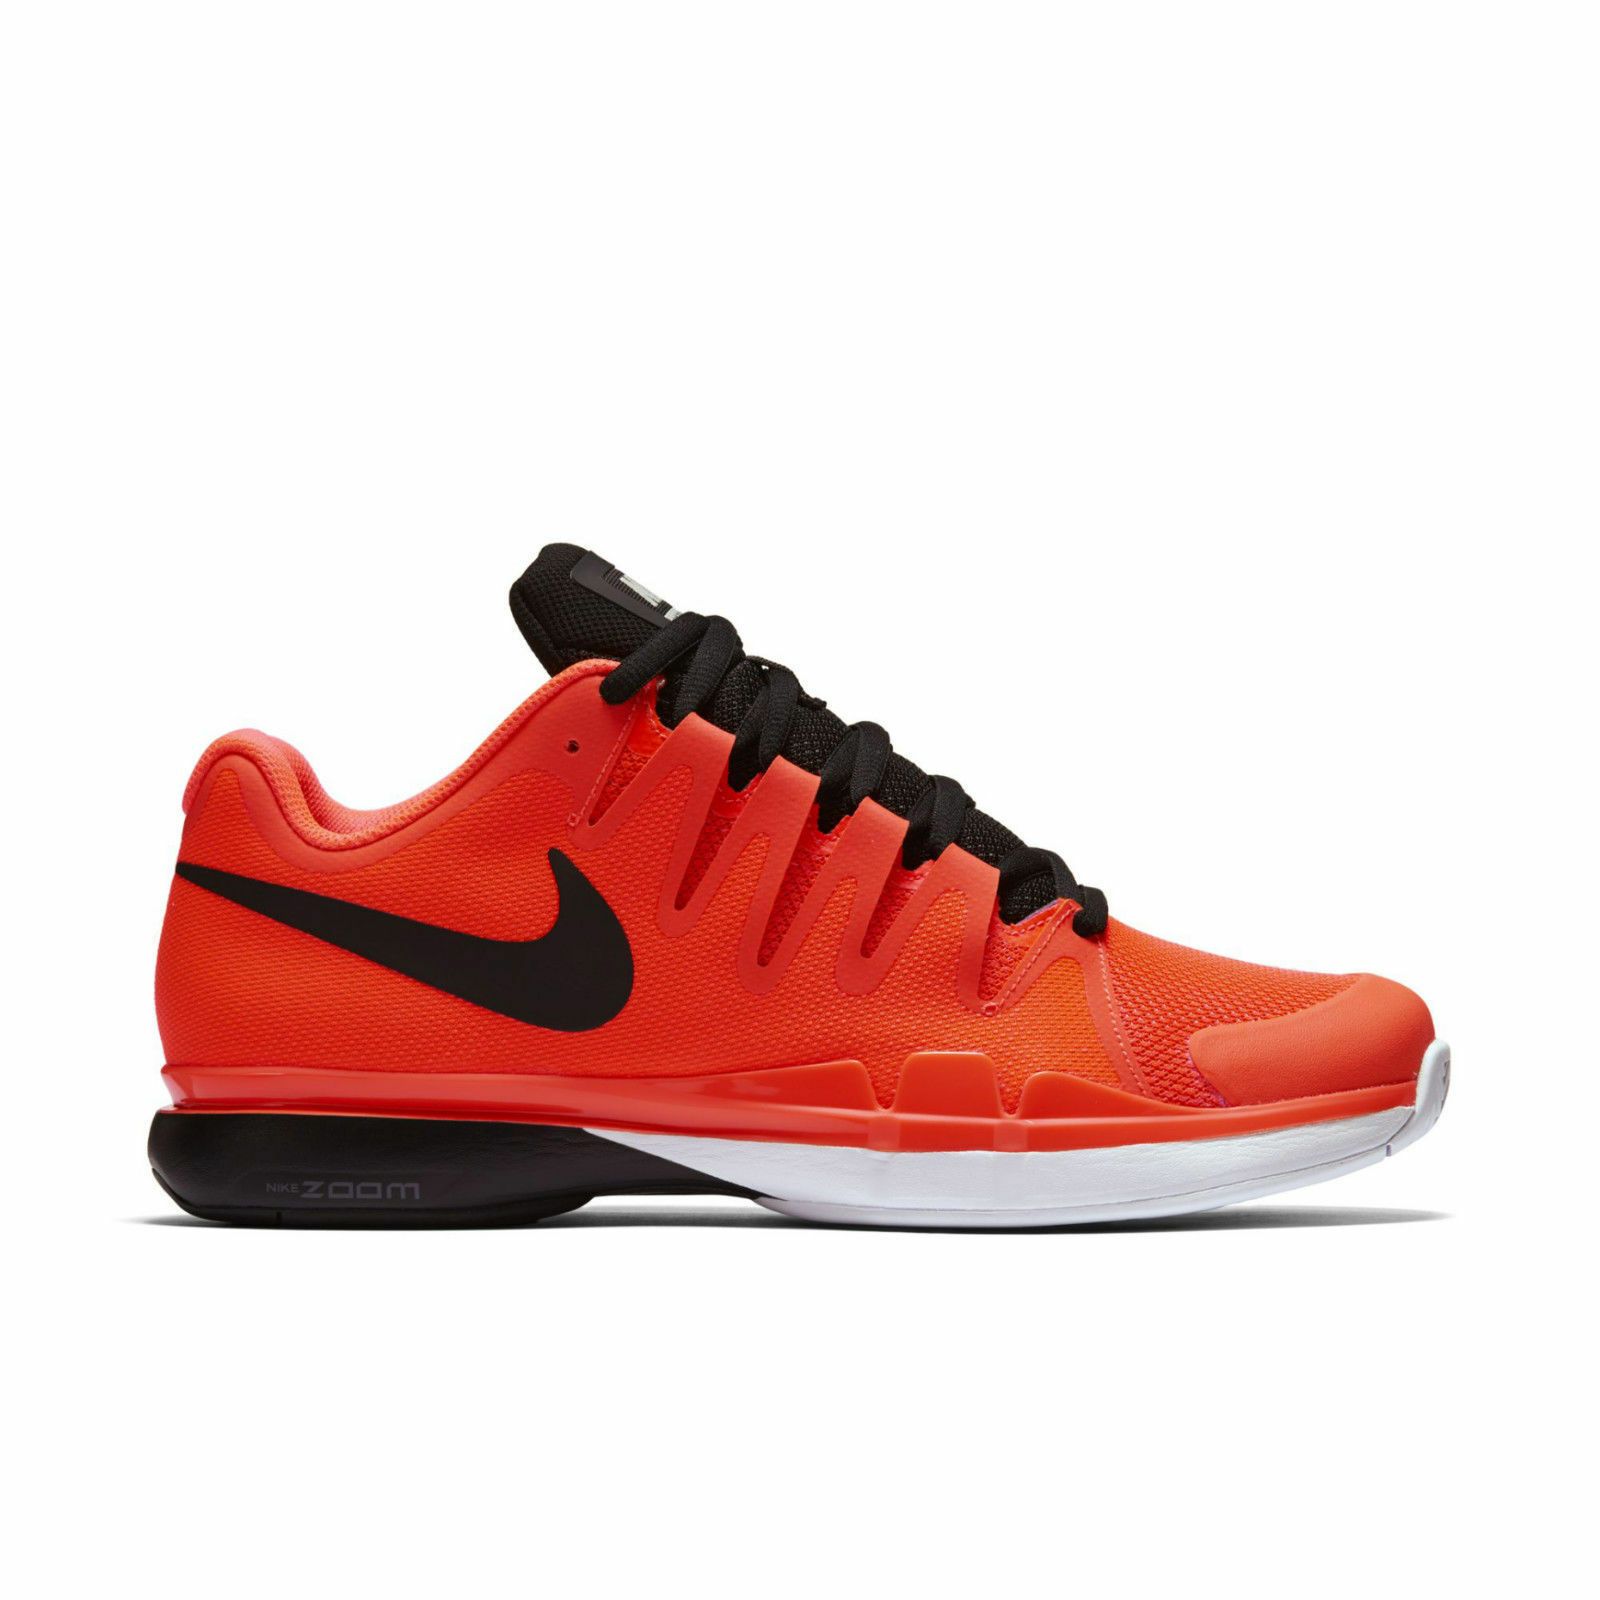 Nike Zoom Cage 2 Women's Tennis Shoes, Orange (£67) ❤ liked